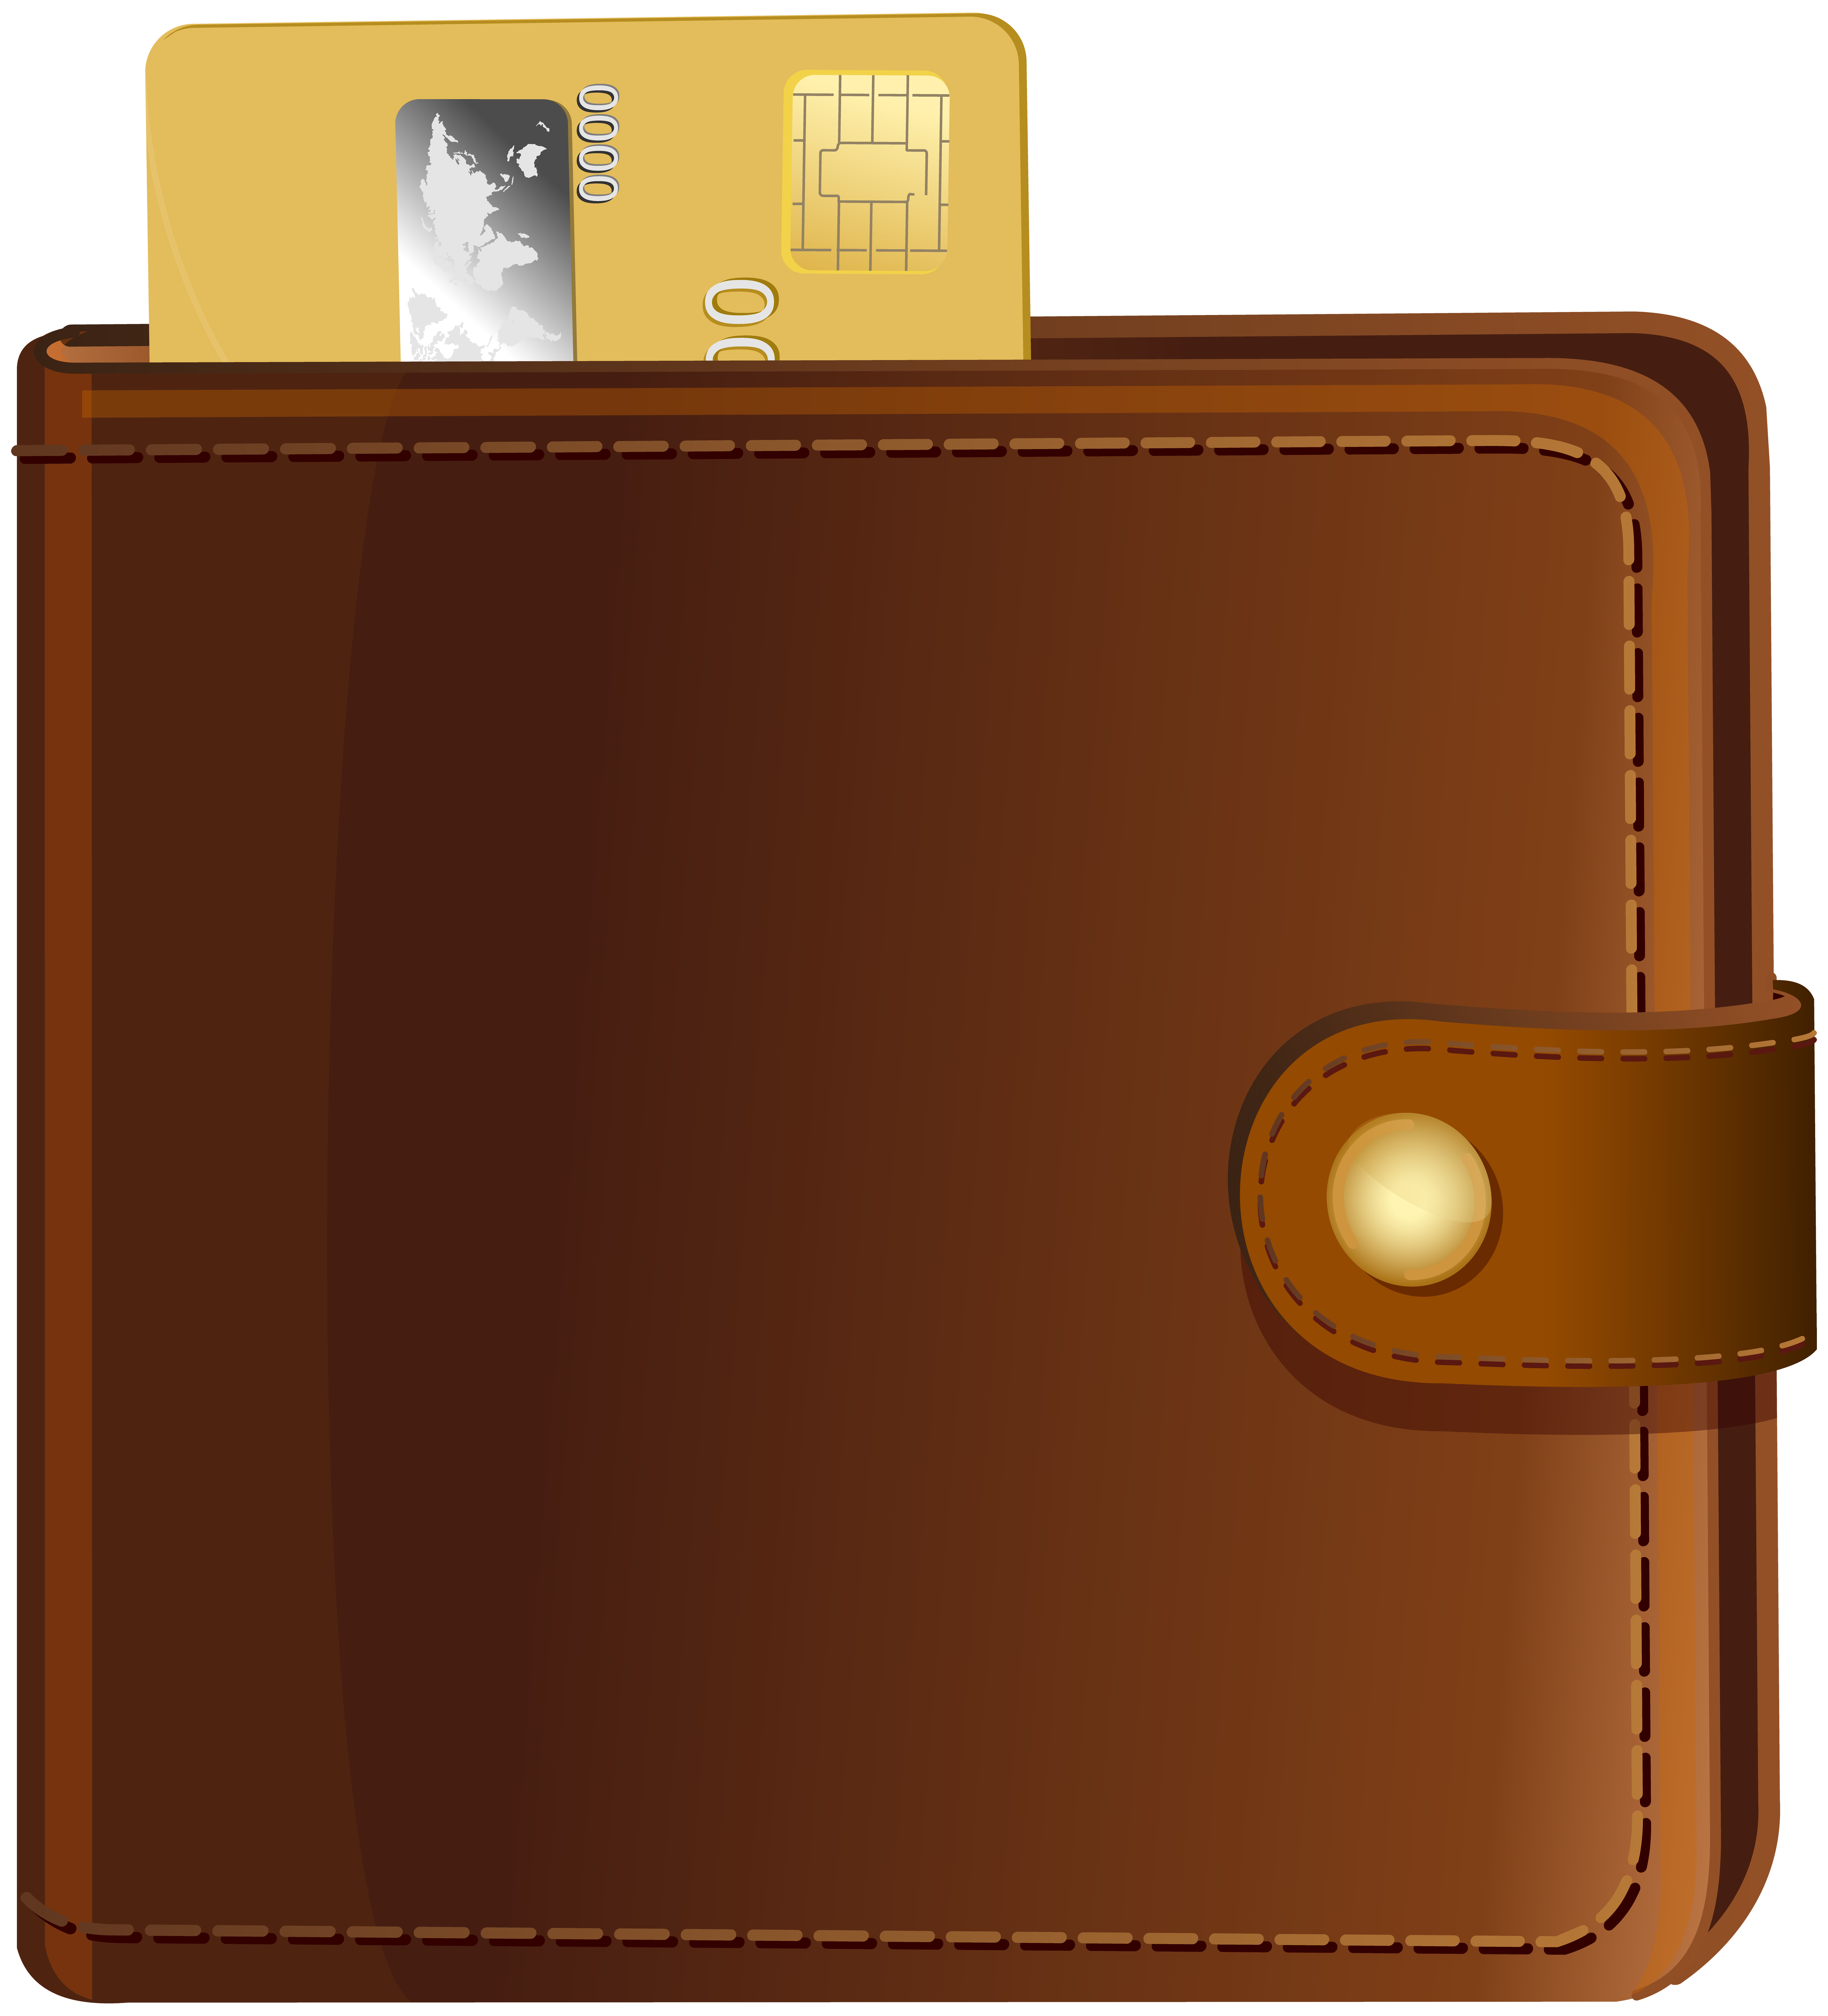 With credit card transparent. Wallet clipart clip royalty free